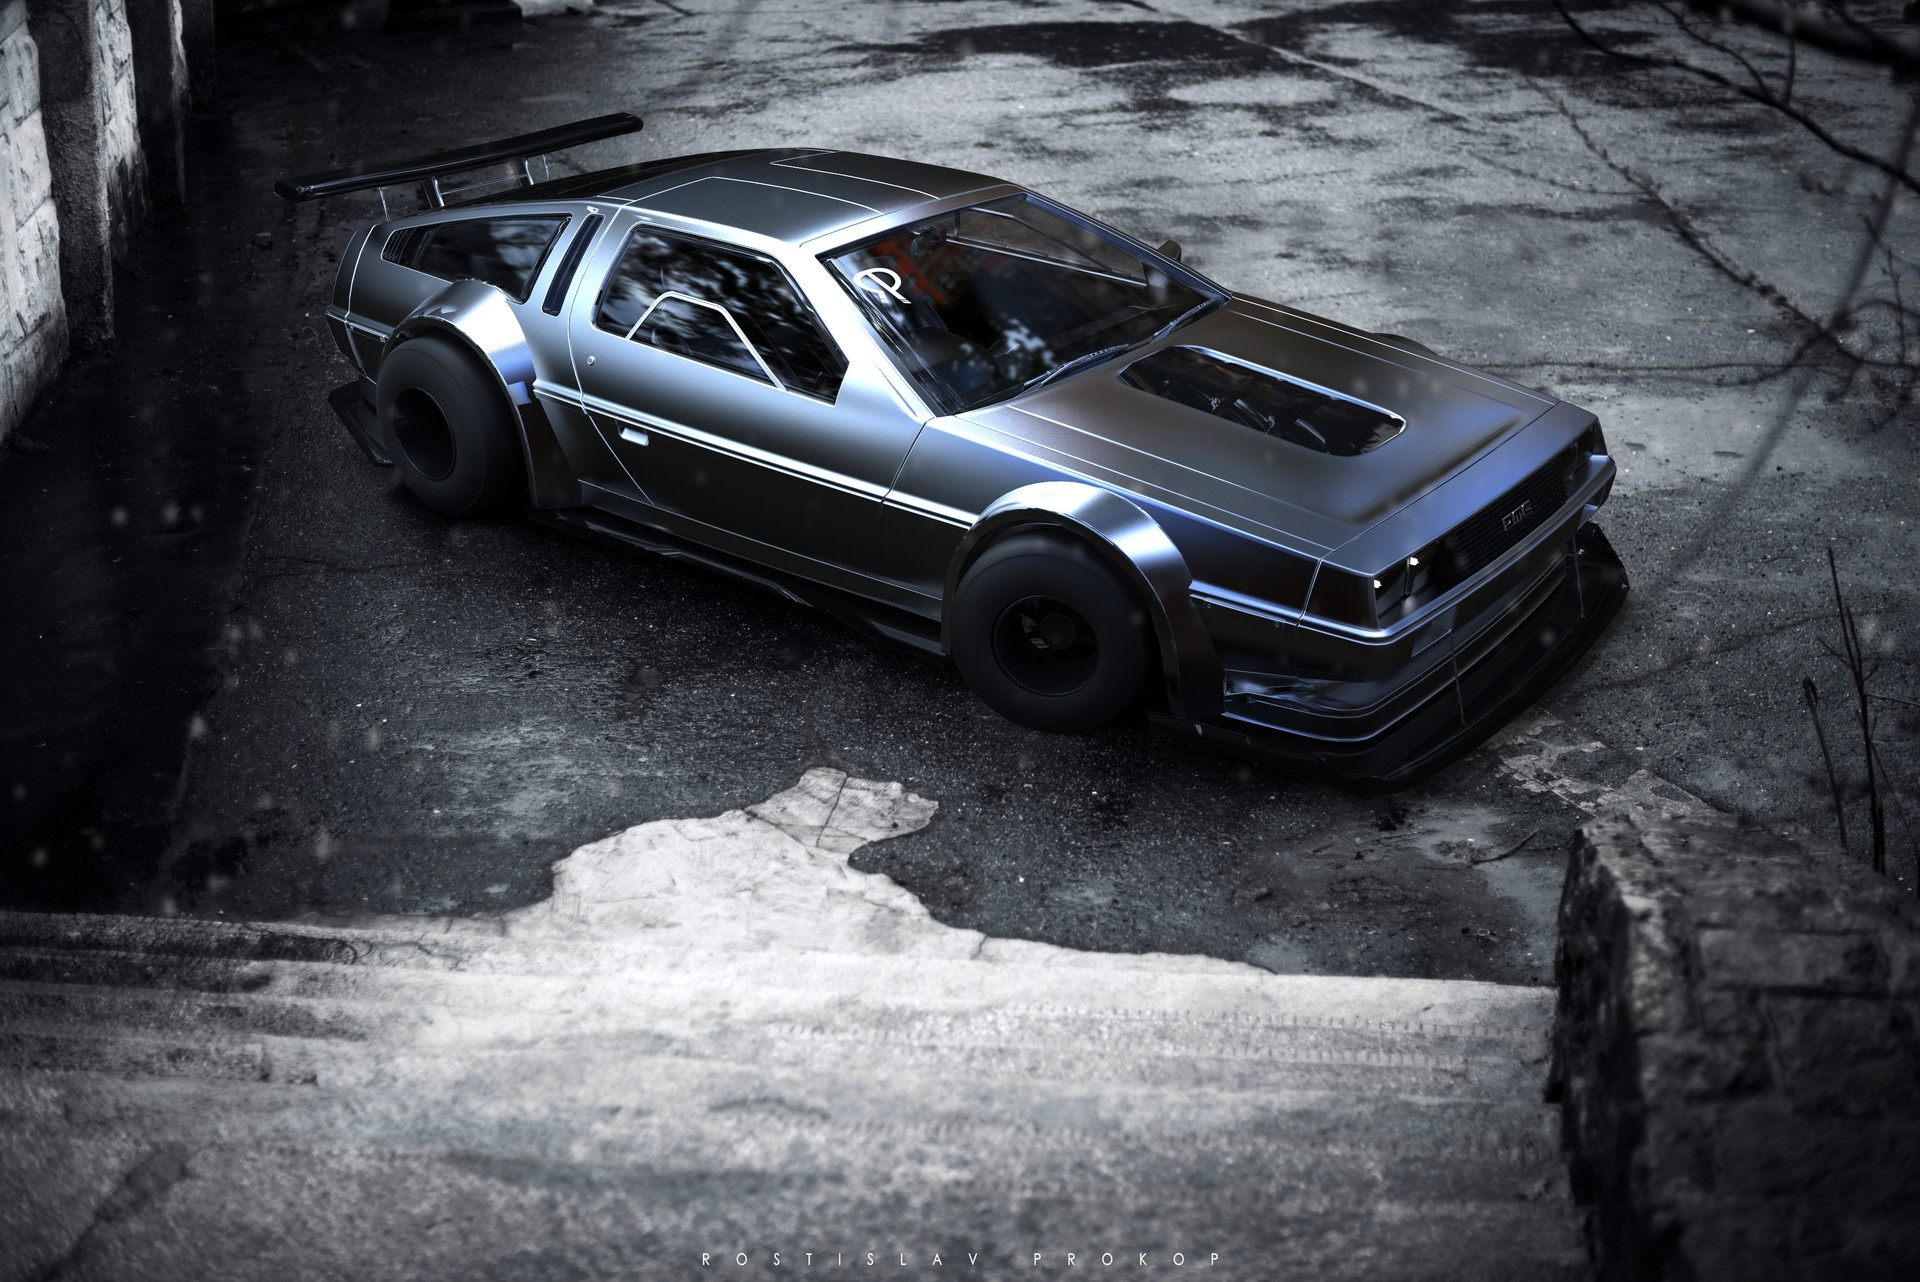 Wallpaper of DeLorean Vehicle Black Car background HD image 1920x1282